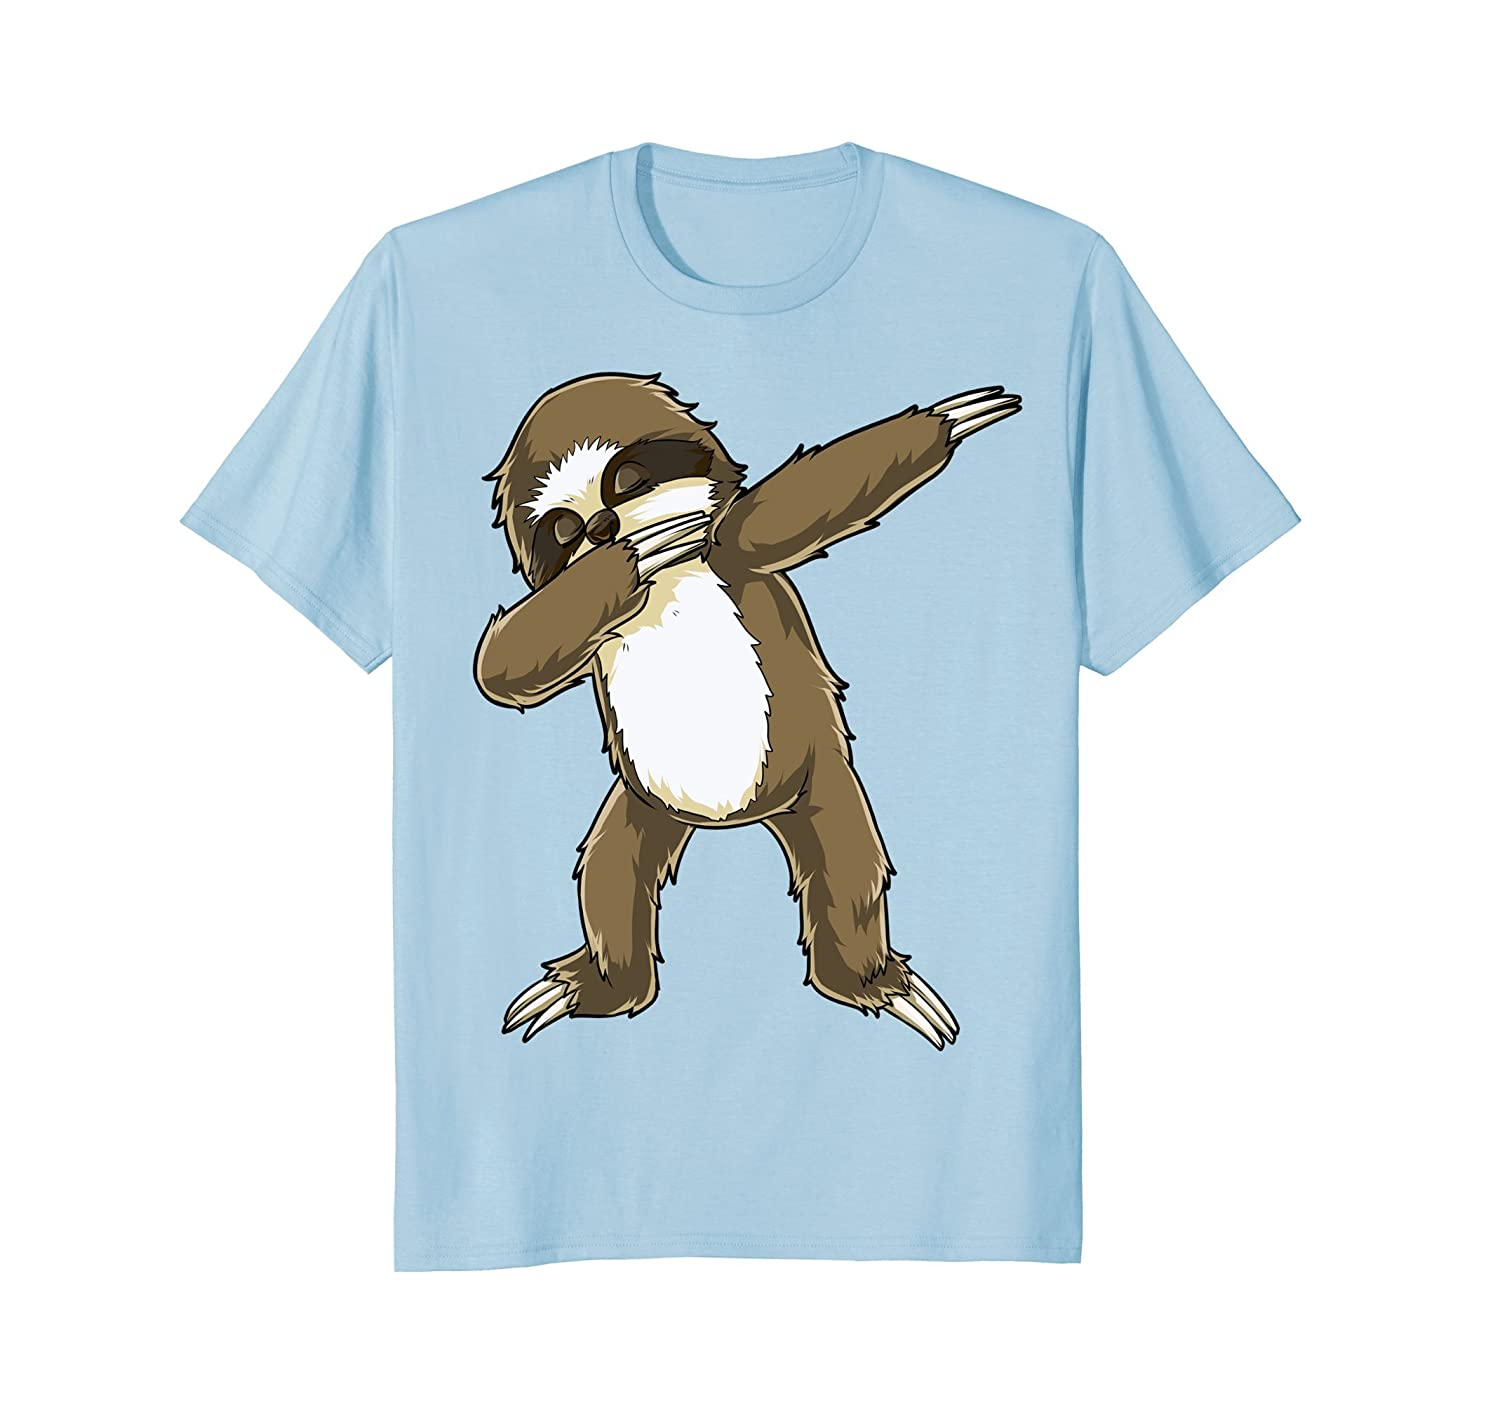 87c625c3 Imported Machine wash cold with like colors, dry low heat. Funny Cute Sloth  doing the famous dab dance Tshirt.